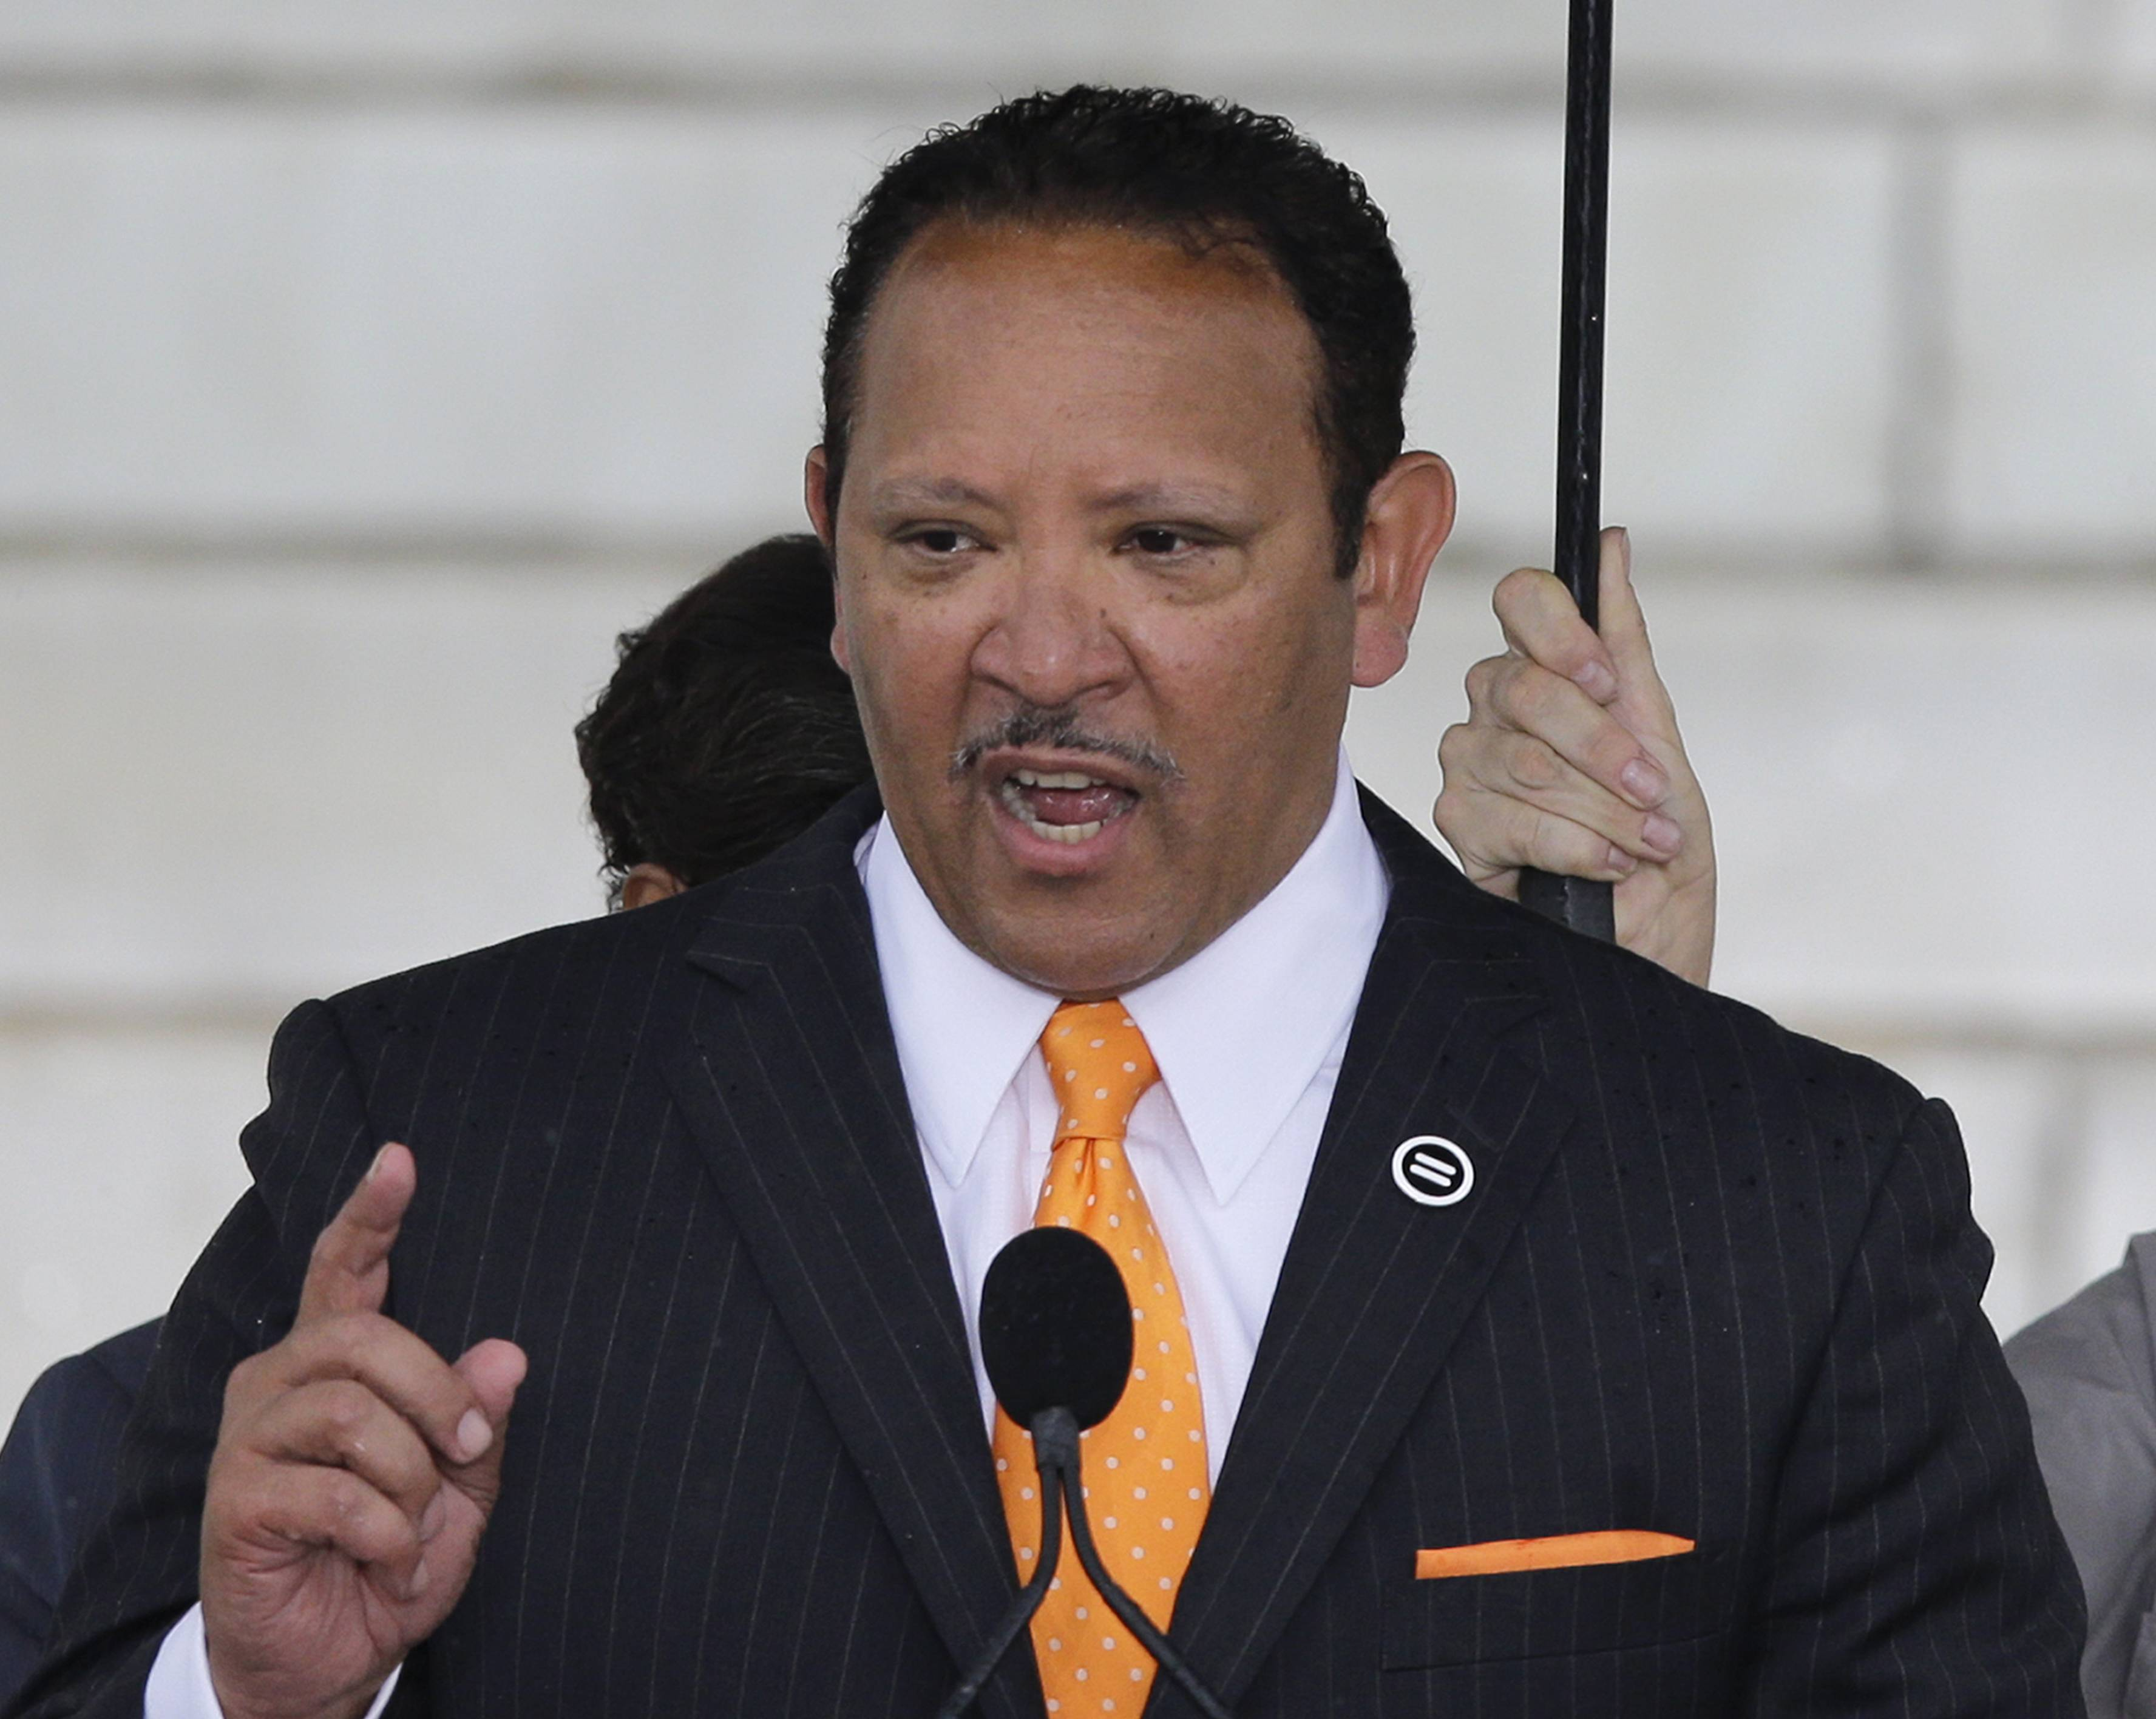 National Urban League President Marc Morial speaking at the Let Freedom Ring ceremony at the Lincoln Memorial in Washington, to commemorate the 50th anniversary of the 1963 March on Washington for Jobs and Freedom.